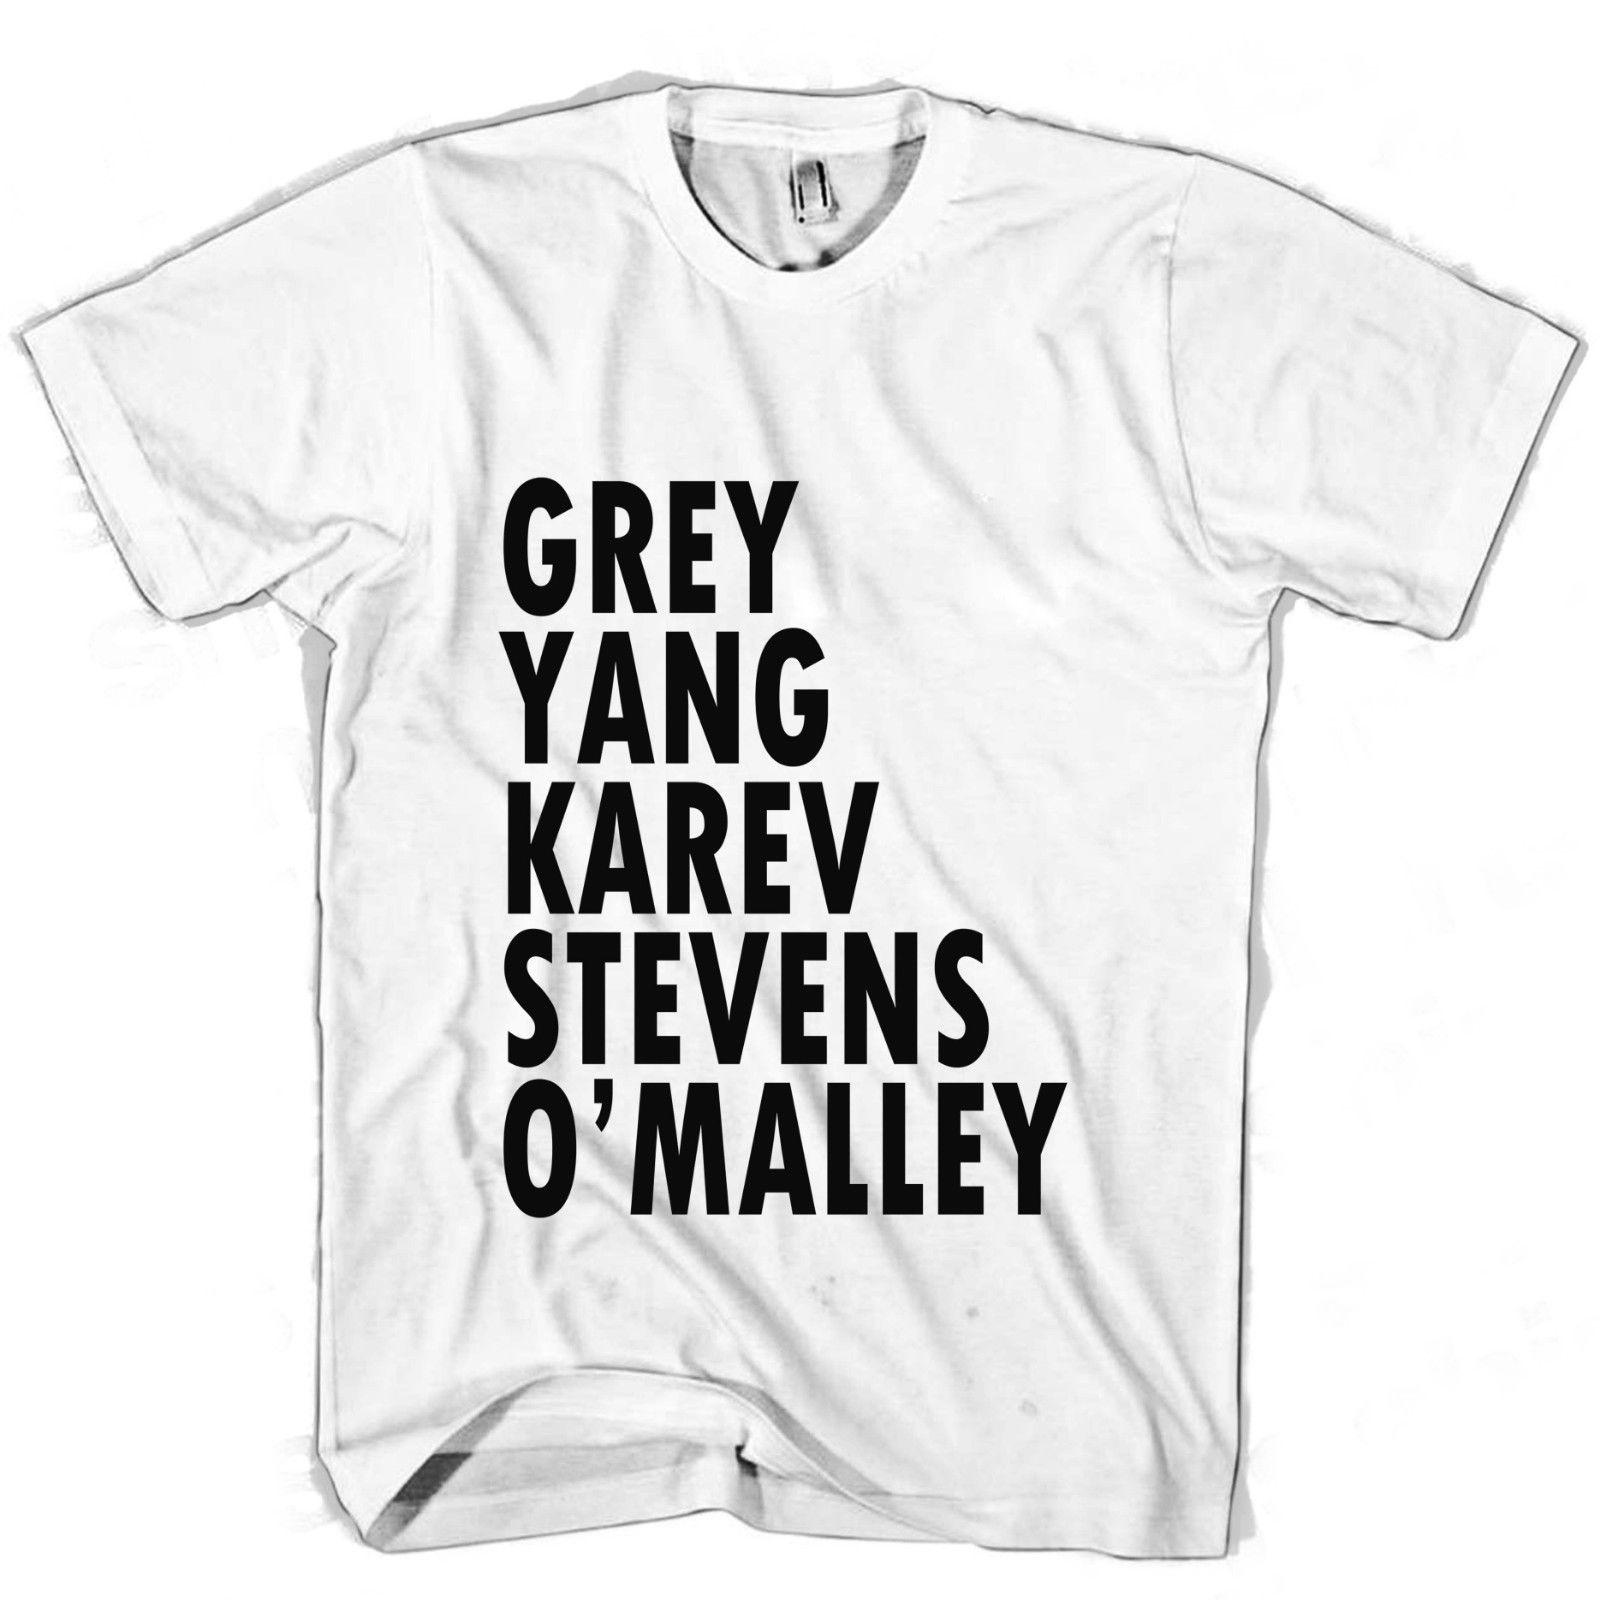 92640af0adb Greys Anatomy Greys fans Men's / Women's T Shirt wholesale free shipping  Tops Round Neck Tees Classical Top 100% Cotton Short Sleeve